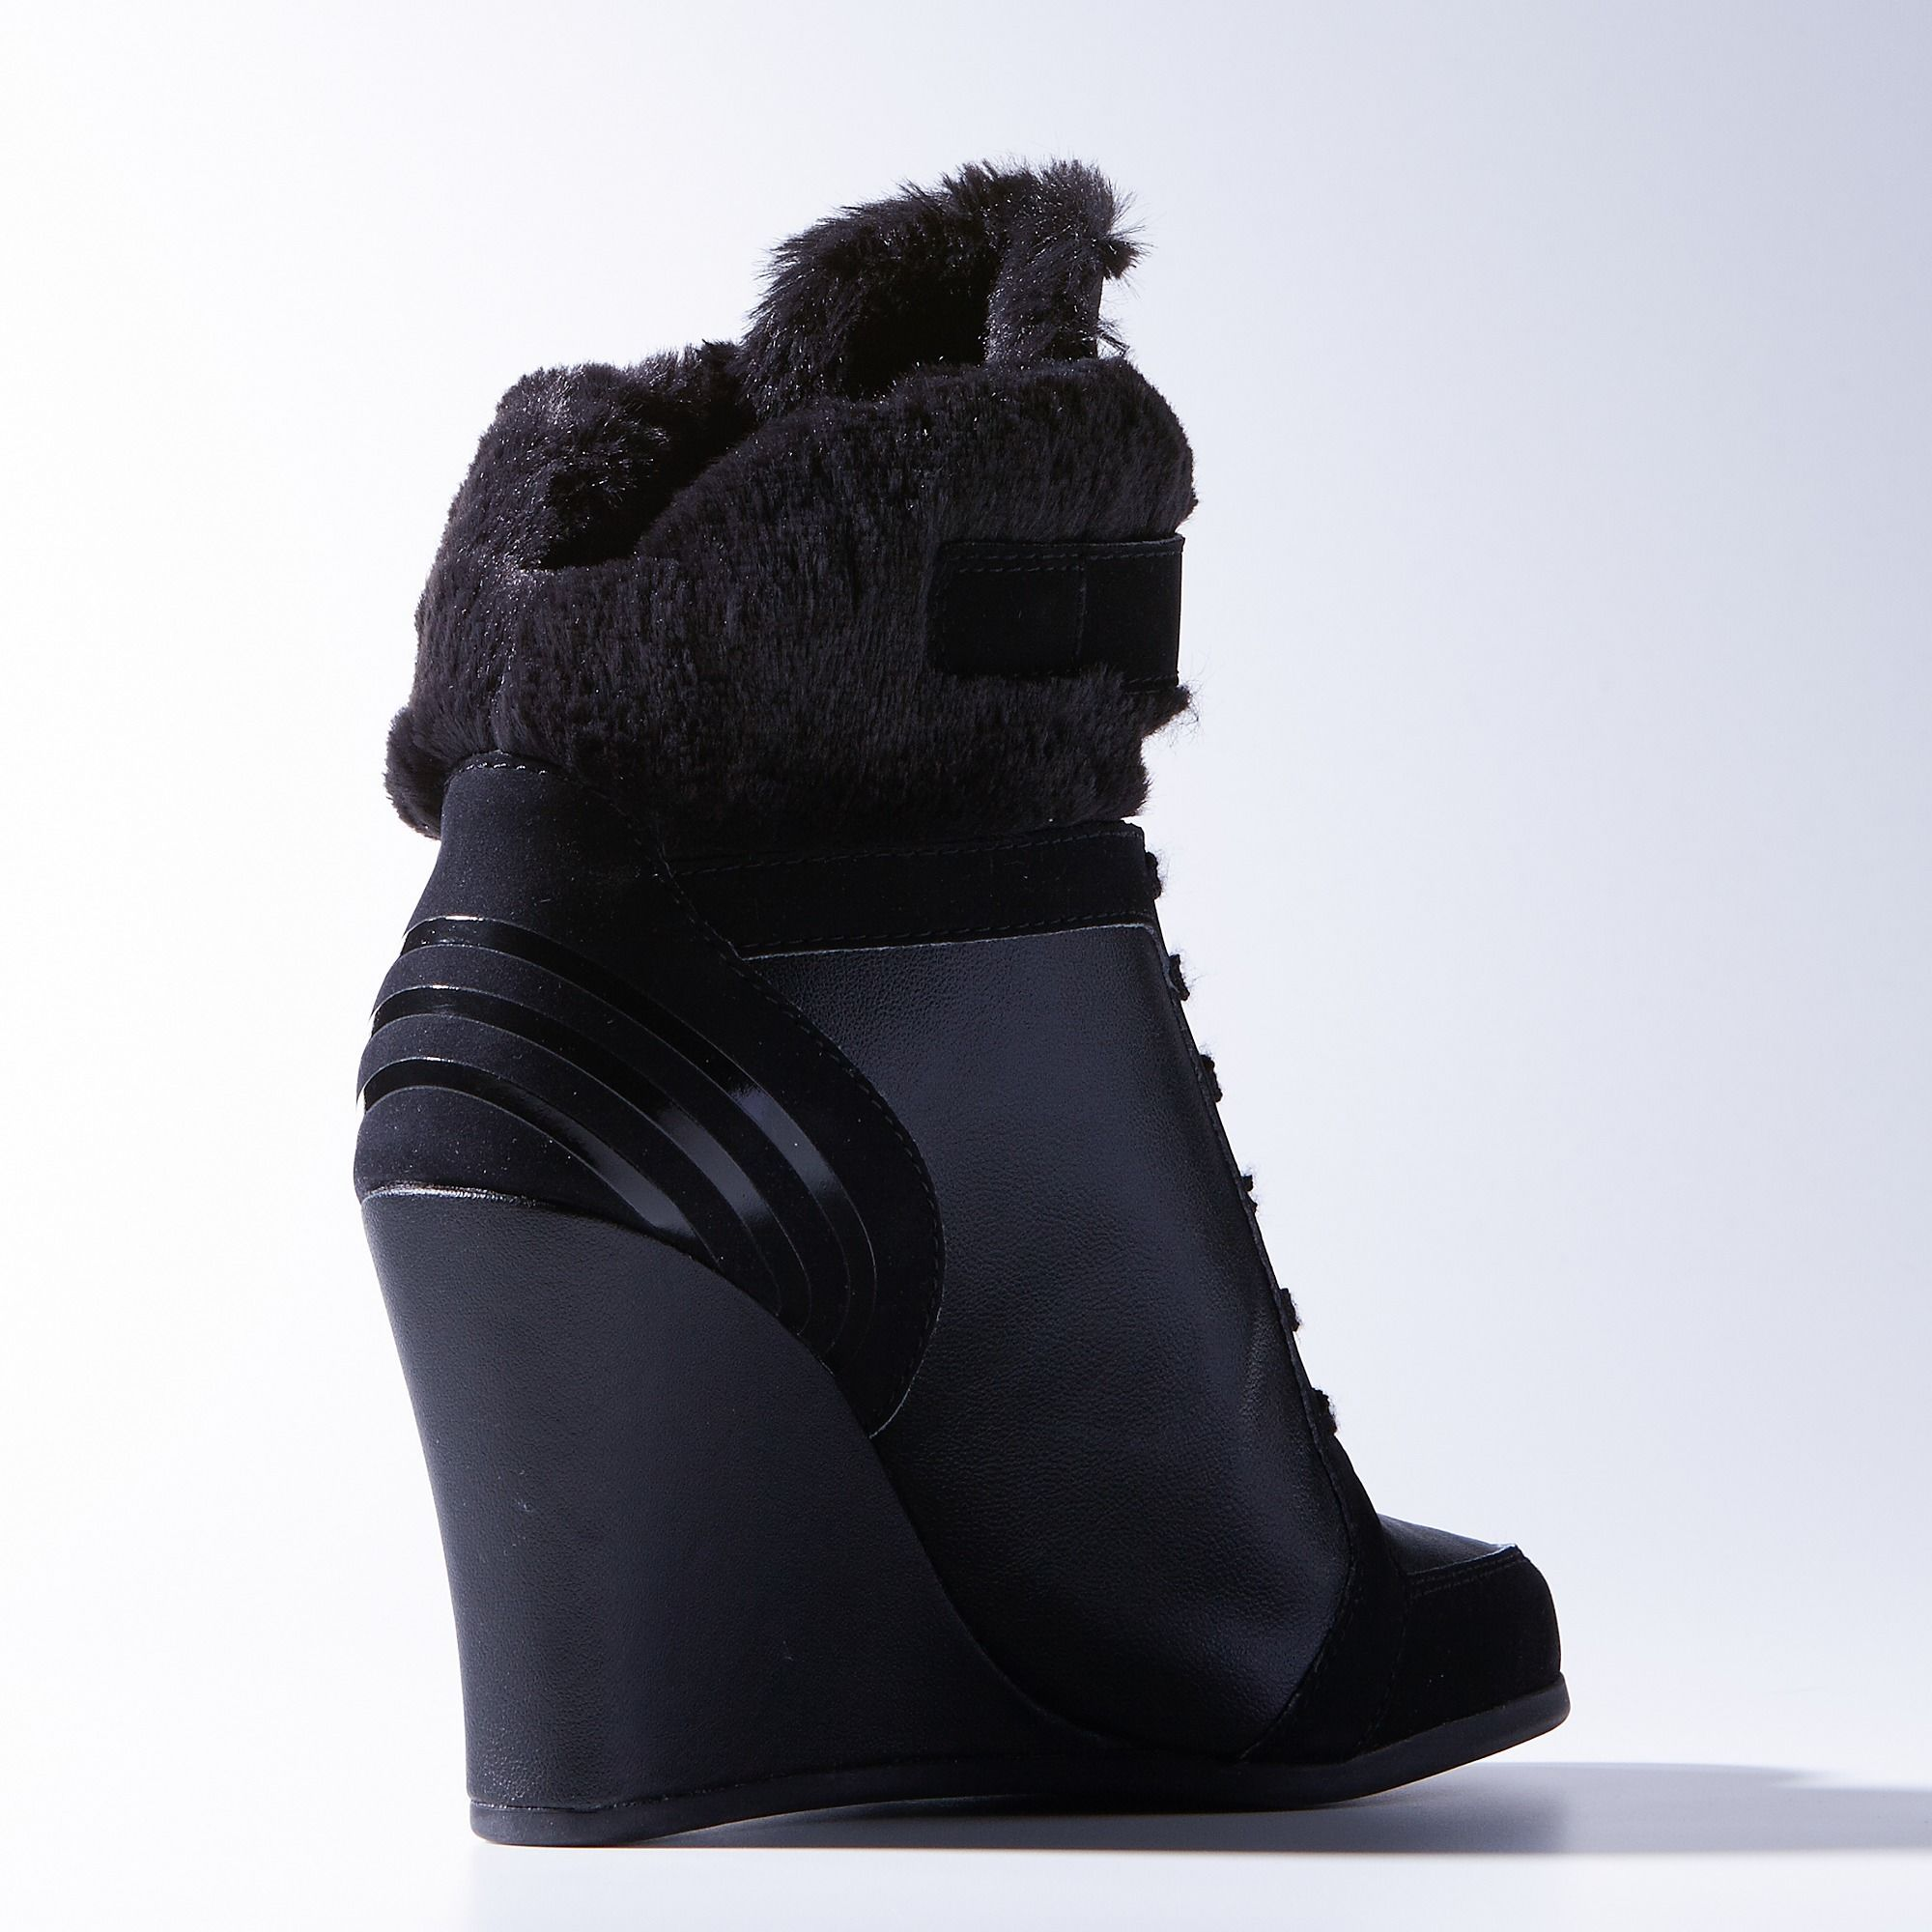 ¡Adidas Selena Gomez Winter Wedge zapatos zapatos!¡!!Pinterest